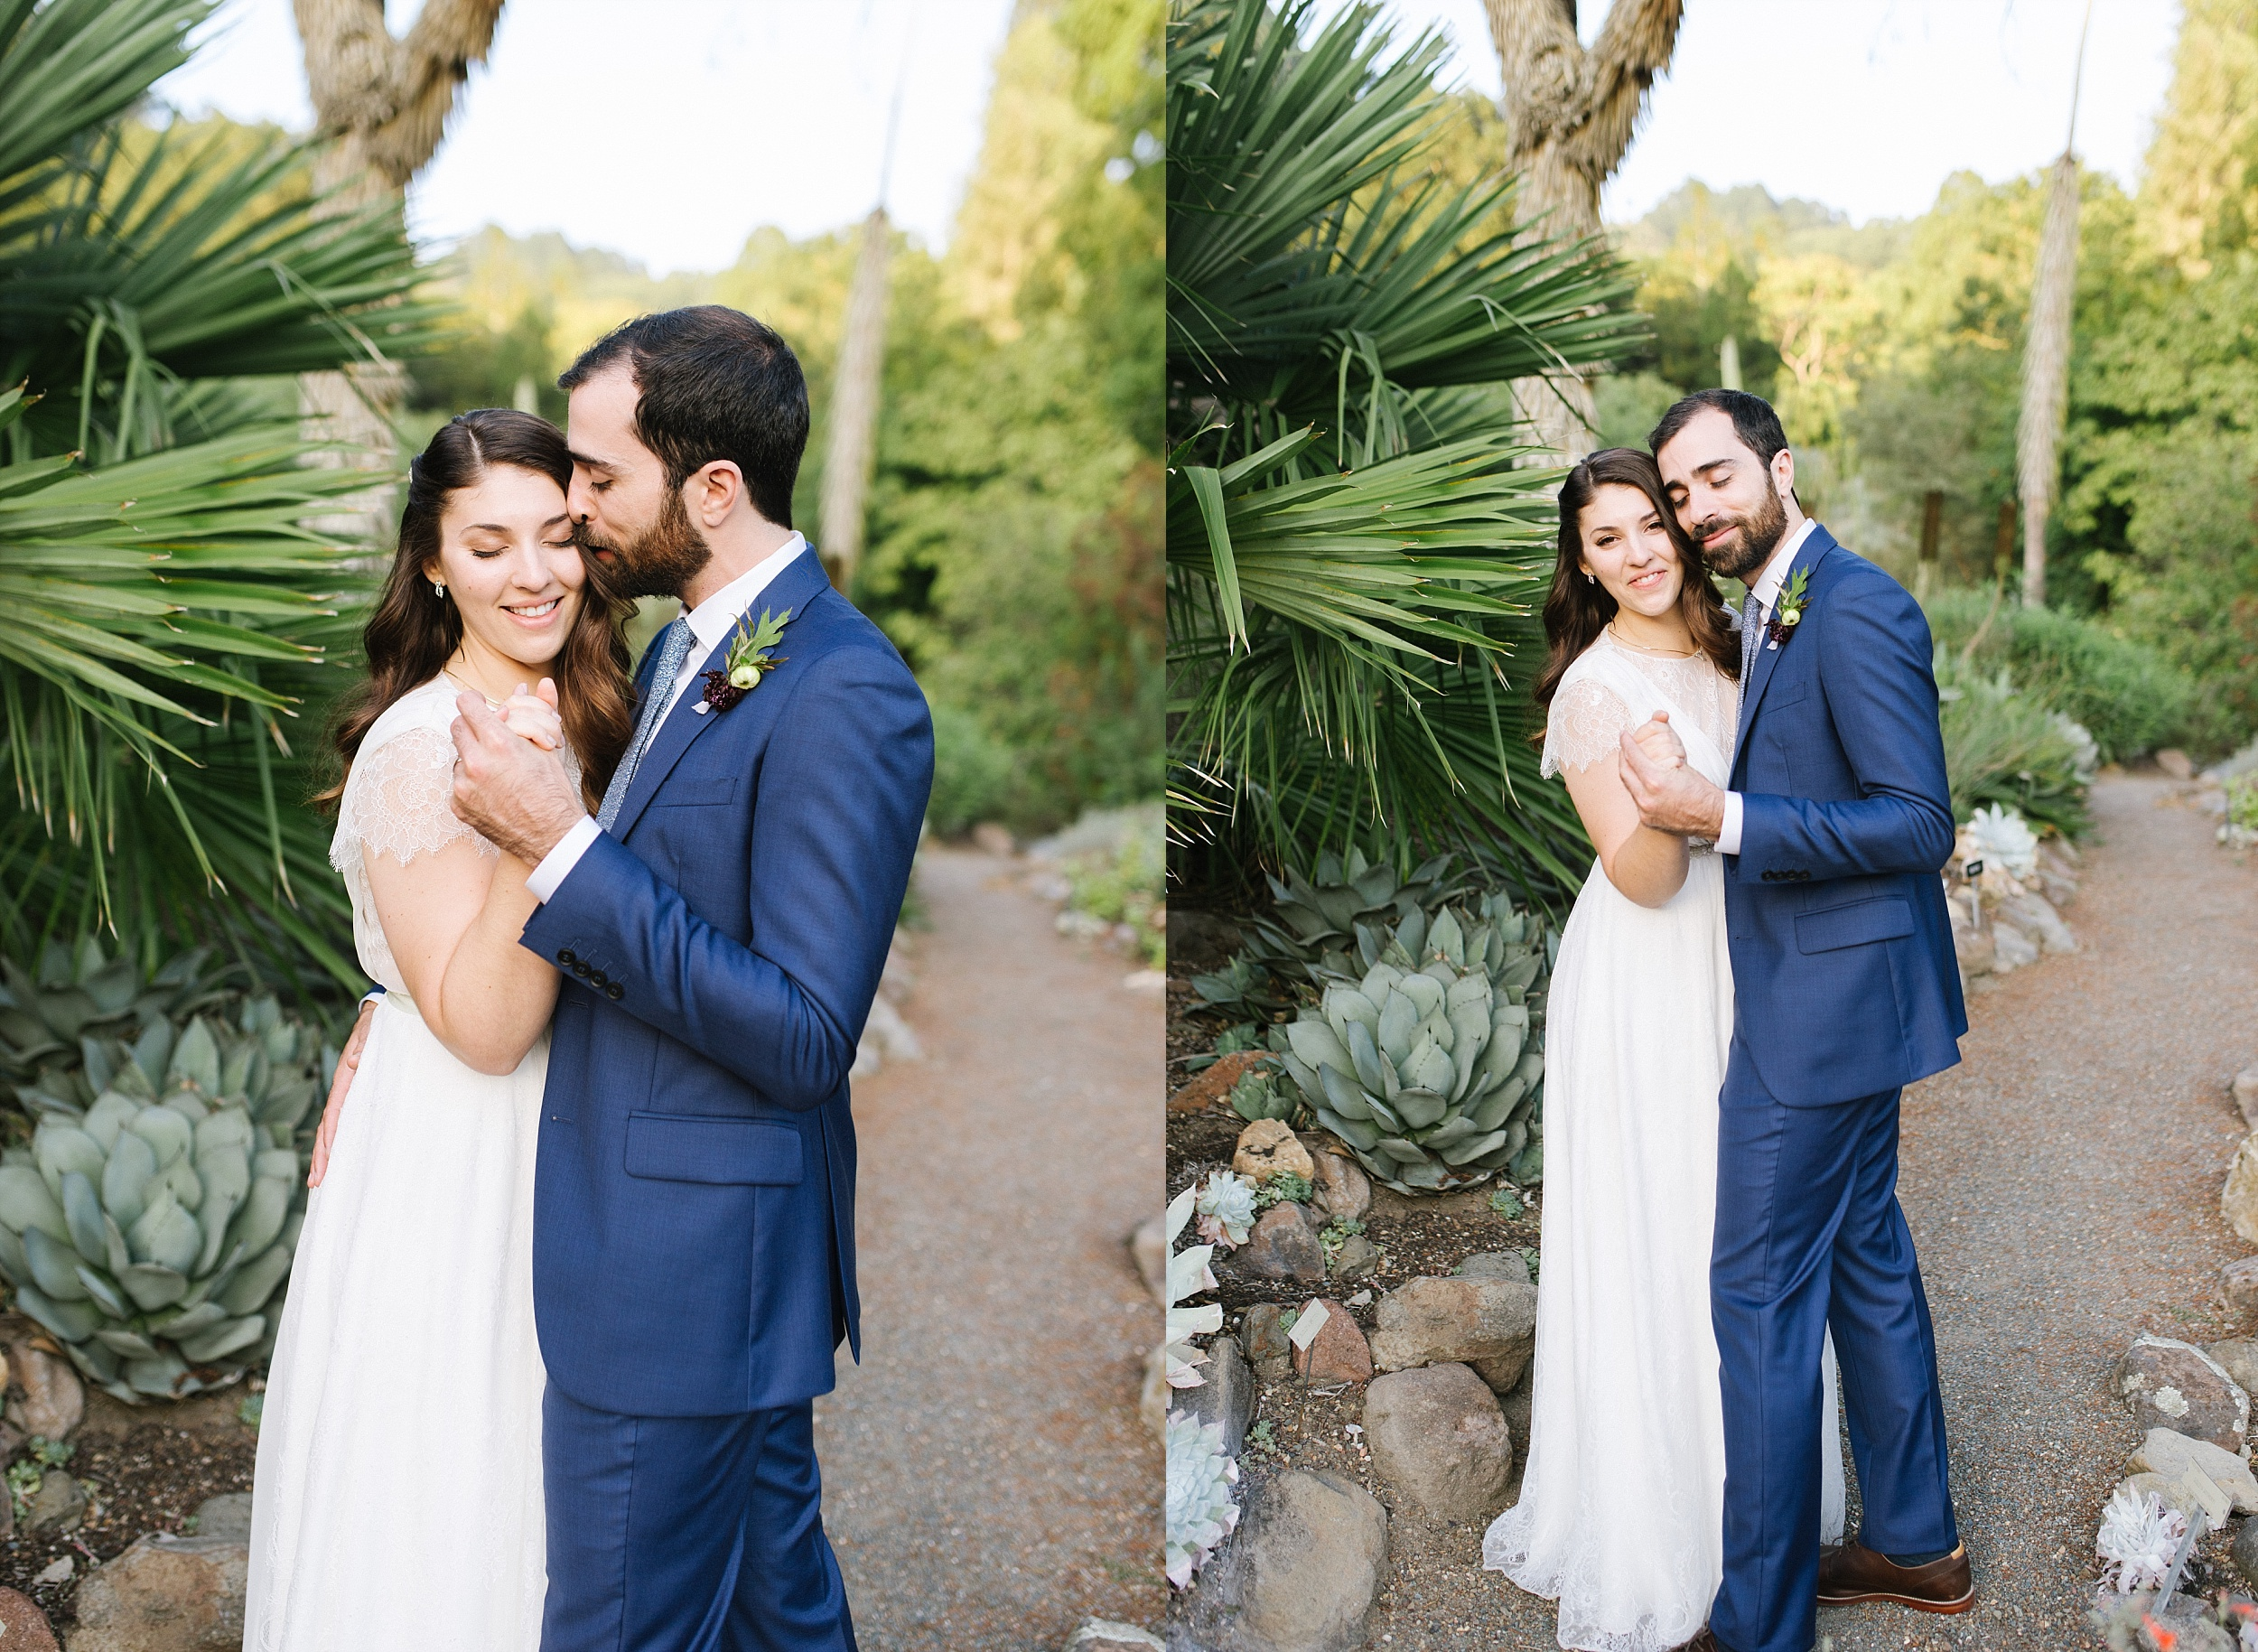 noahhannah_redwoods_botanical_wedding_berkeley_cdp_0024.jpg